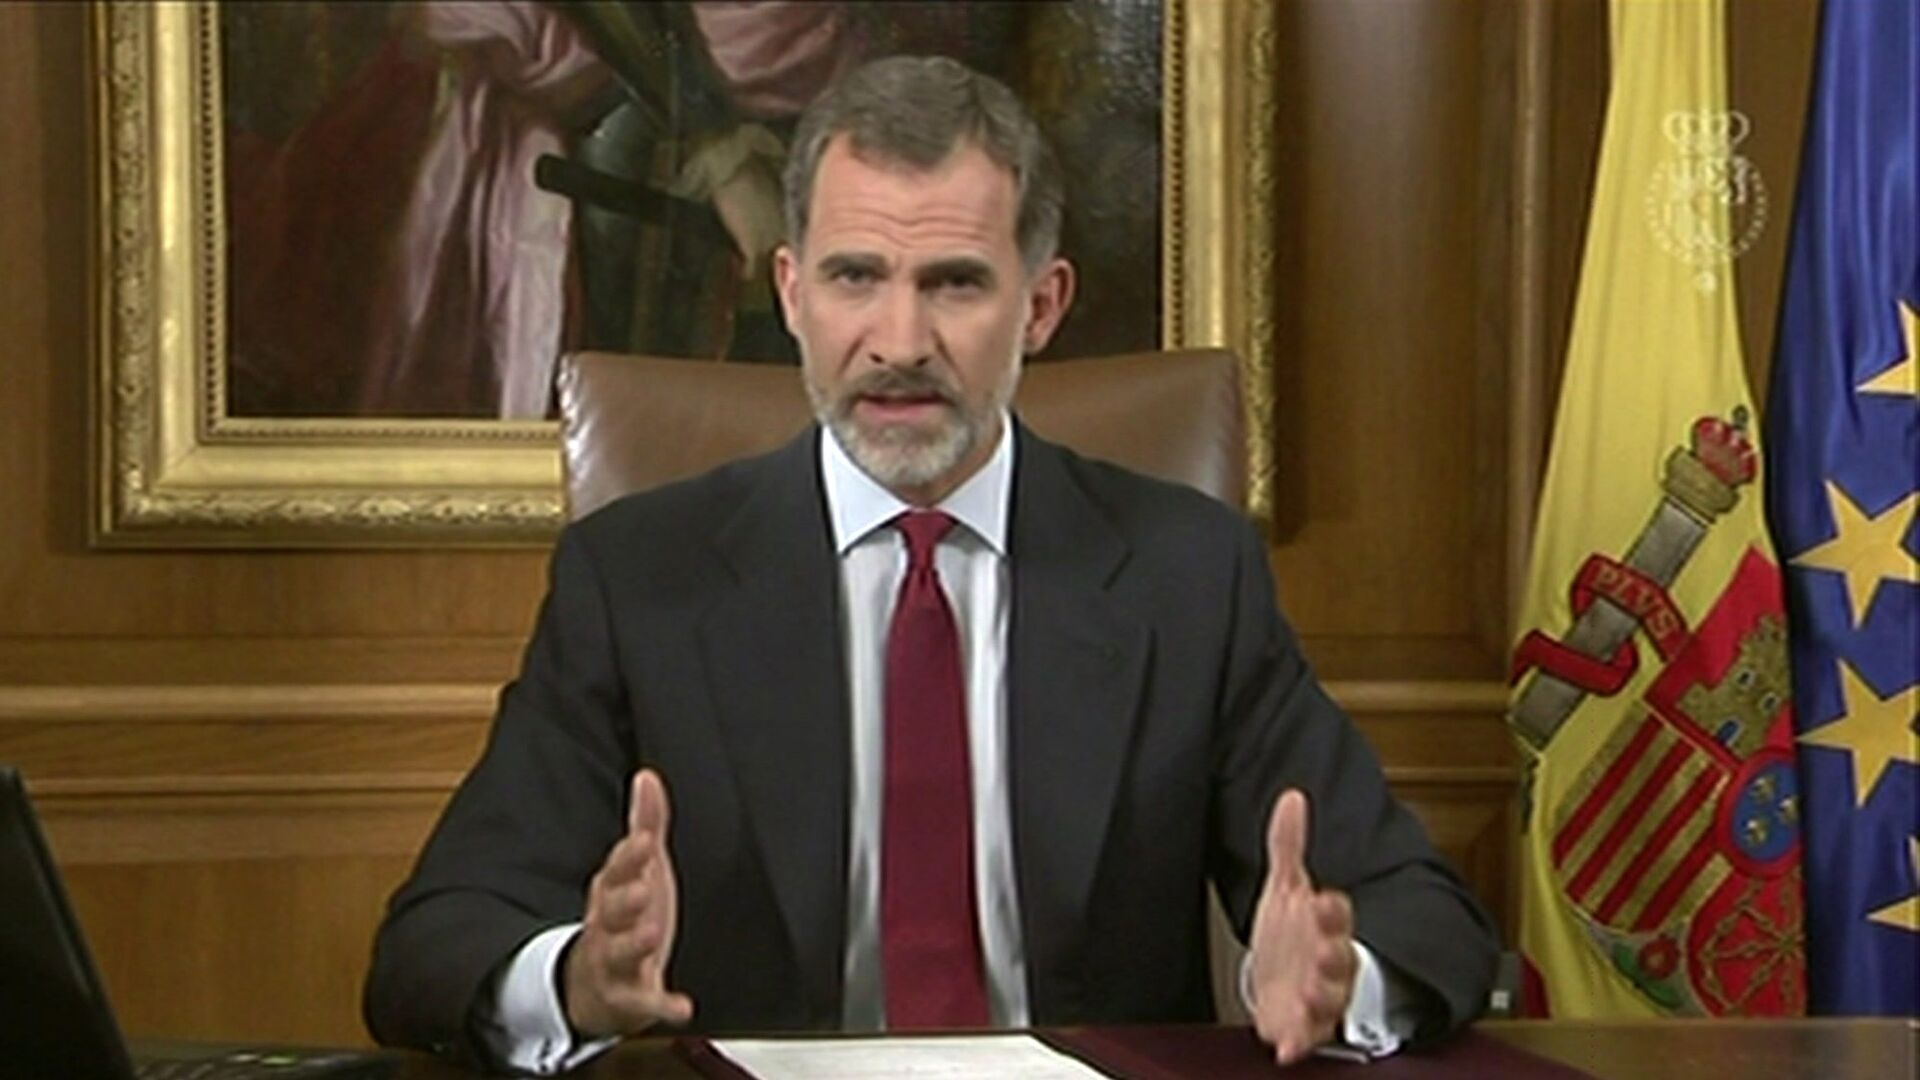 In this image taken from video released by Spanish Royal Palace, Spain's King Felipe VI delivers a speech on television from Zarzuela Palace in Madrid, Tuesday, Oct. 3, 2017. - Sputnik Italia, 1920, 30.05.2021